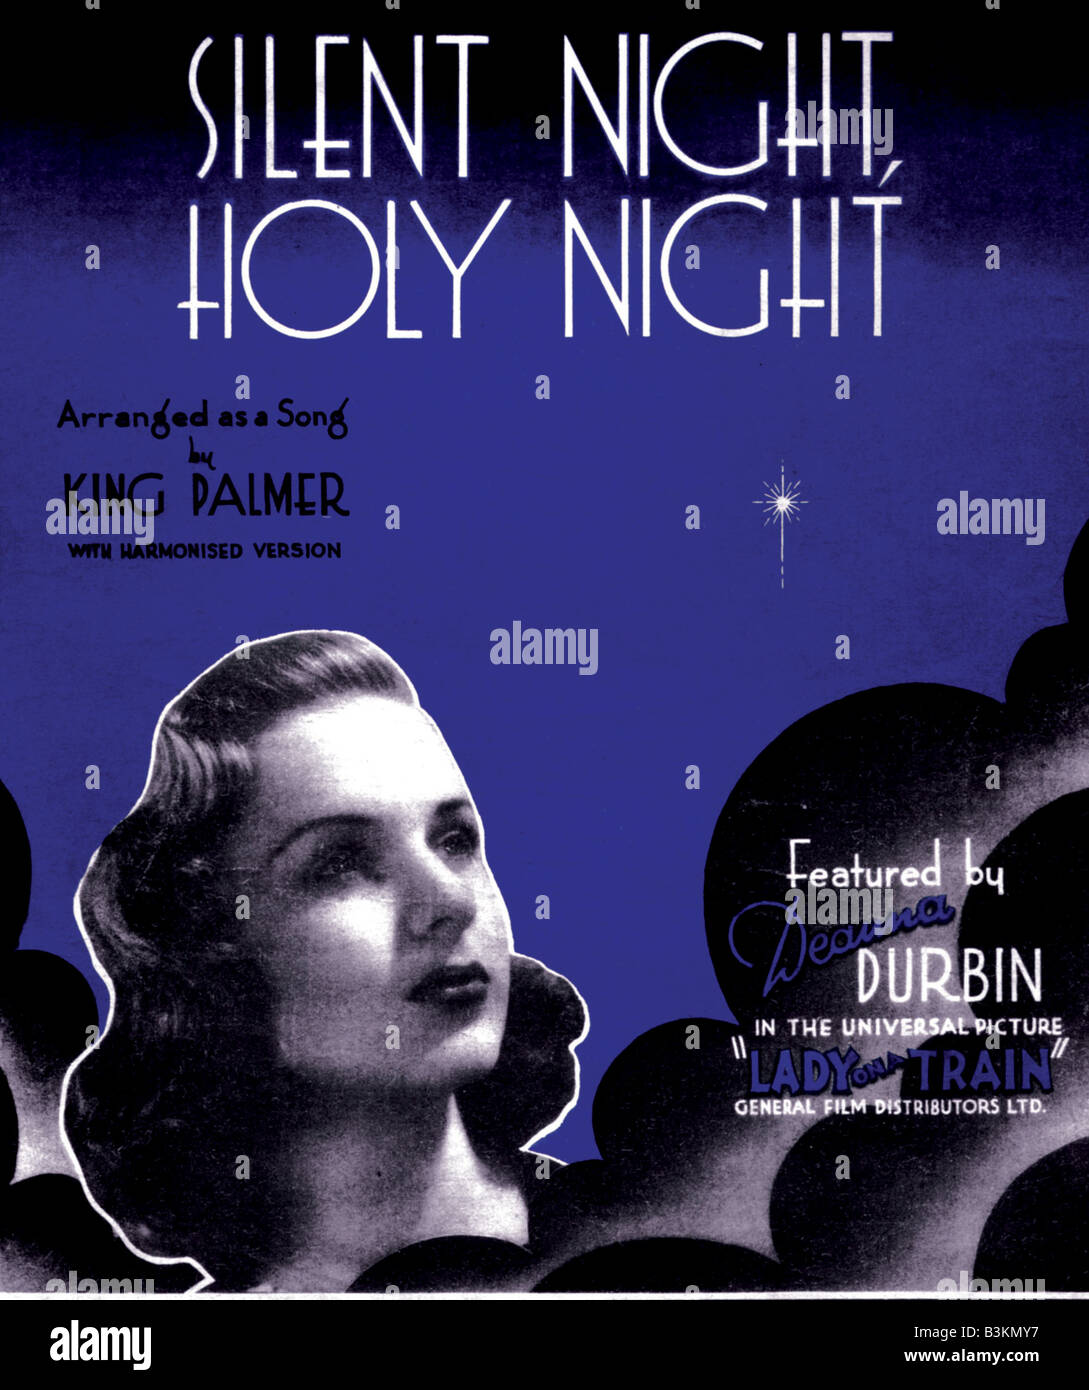 DEANNA DURBIN Sheet music for Silent Night, Holy Night sung by her in the 1945 Universal film Lady On A Train - Stock Image